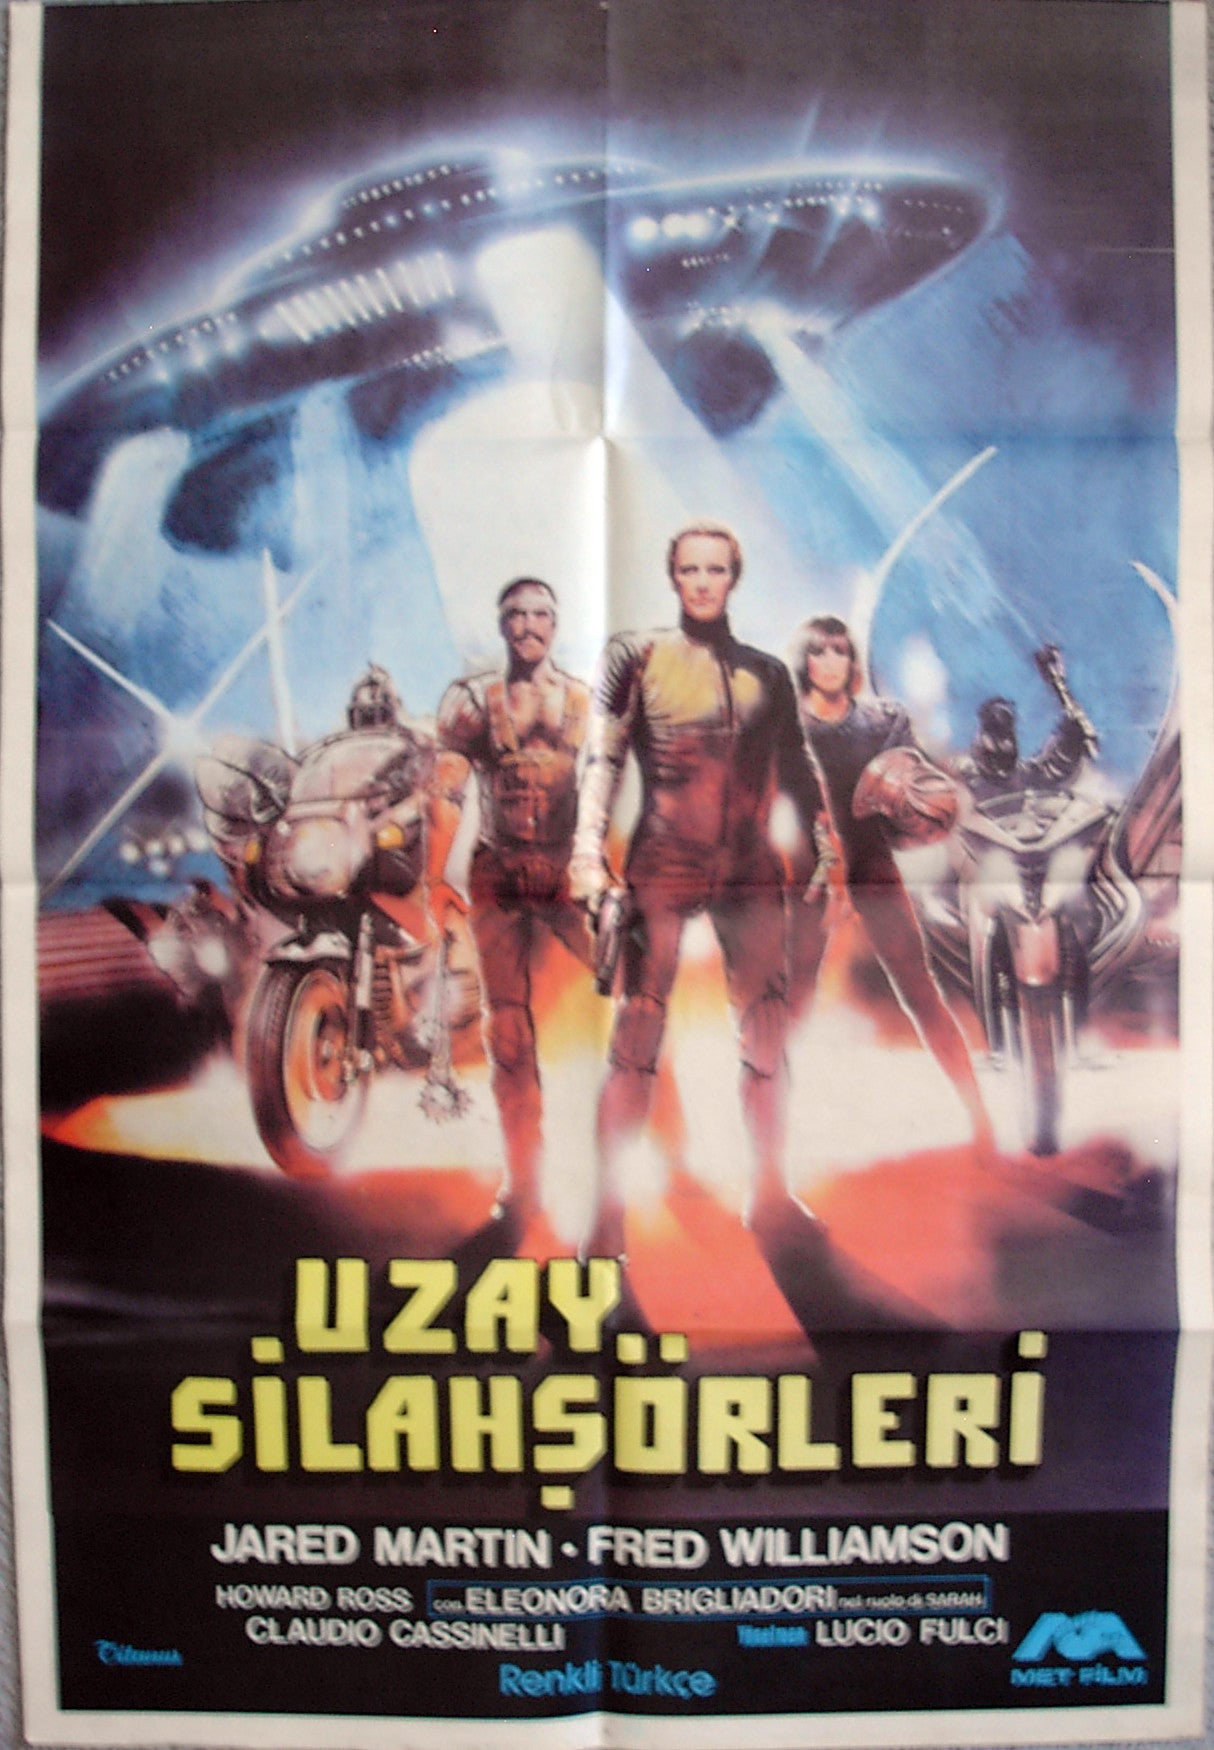 2072: NEW GLADIATORS - Turkish poster